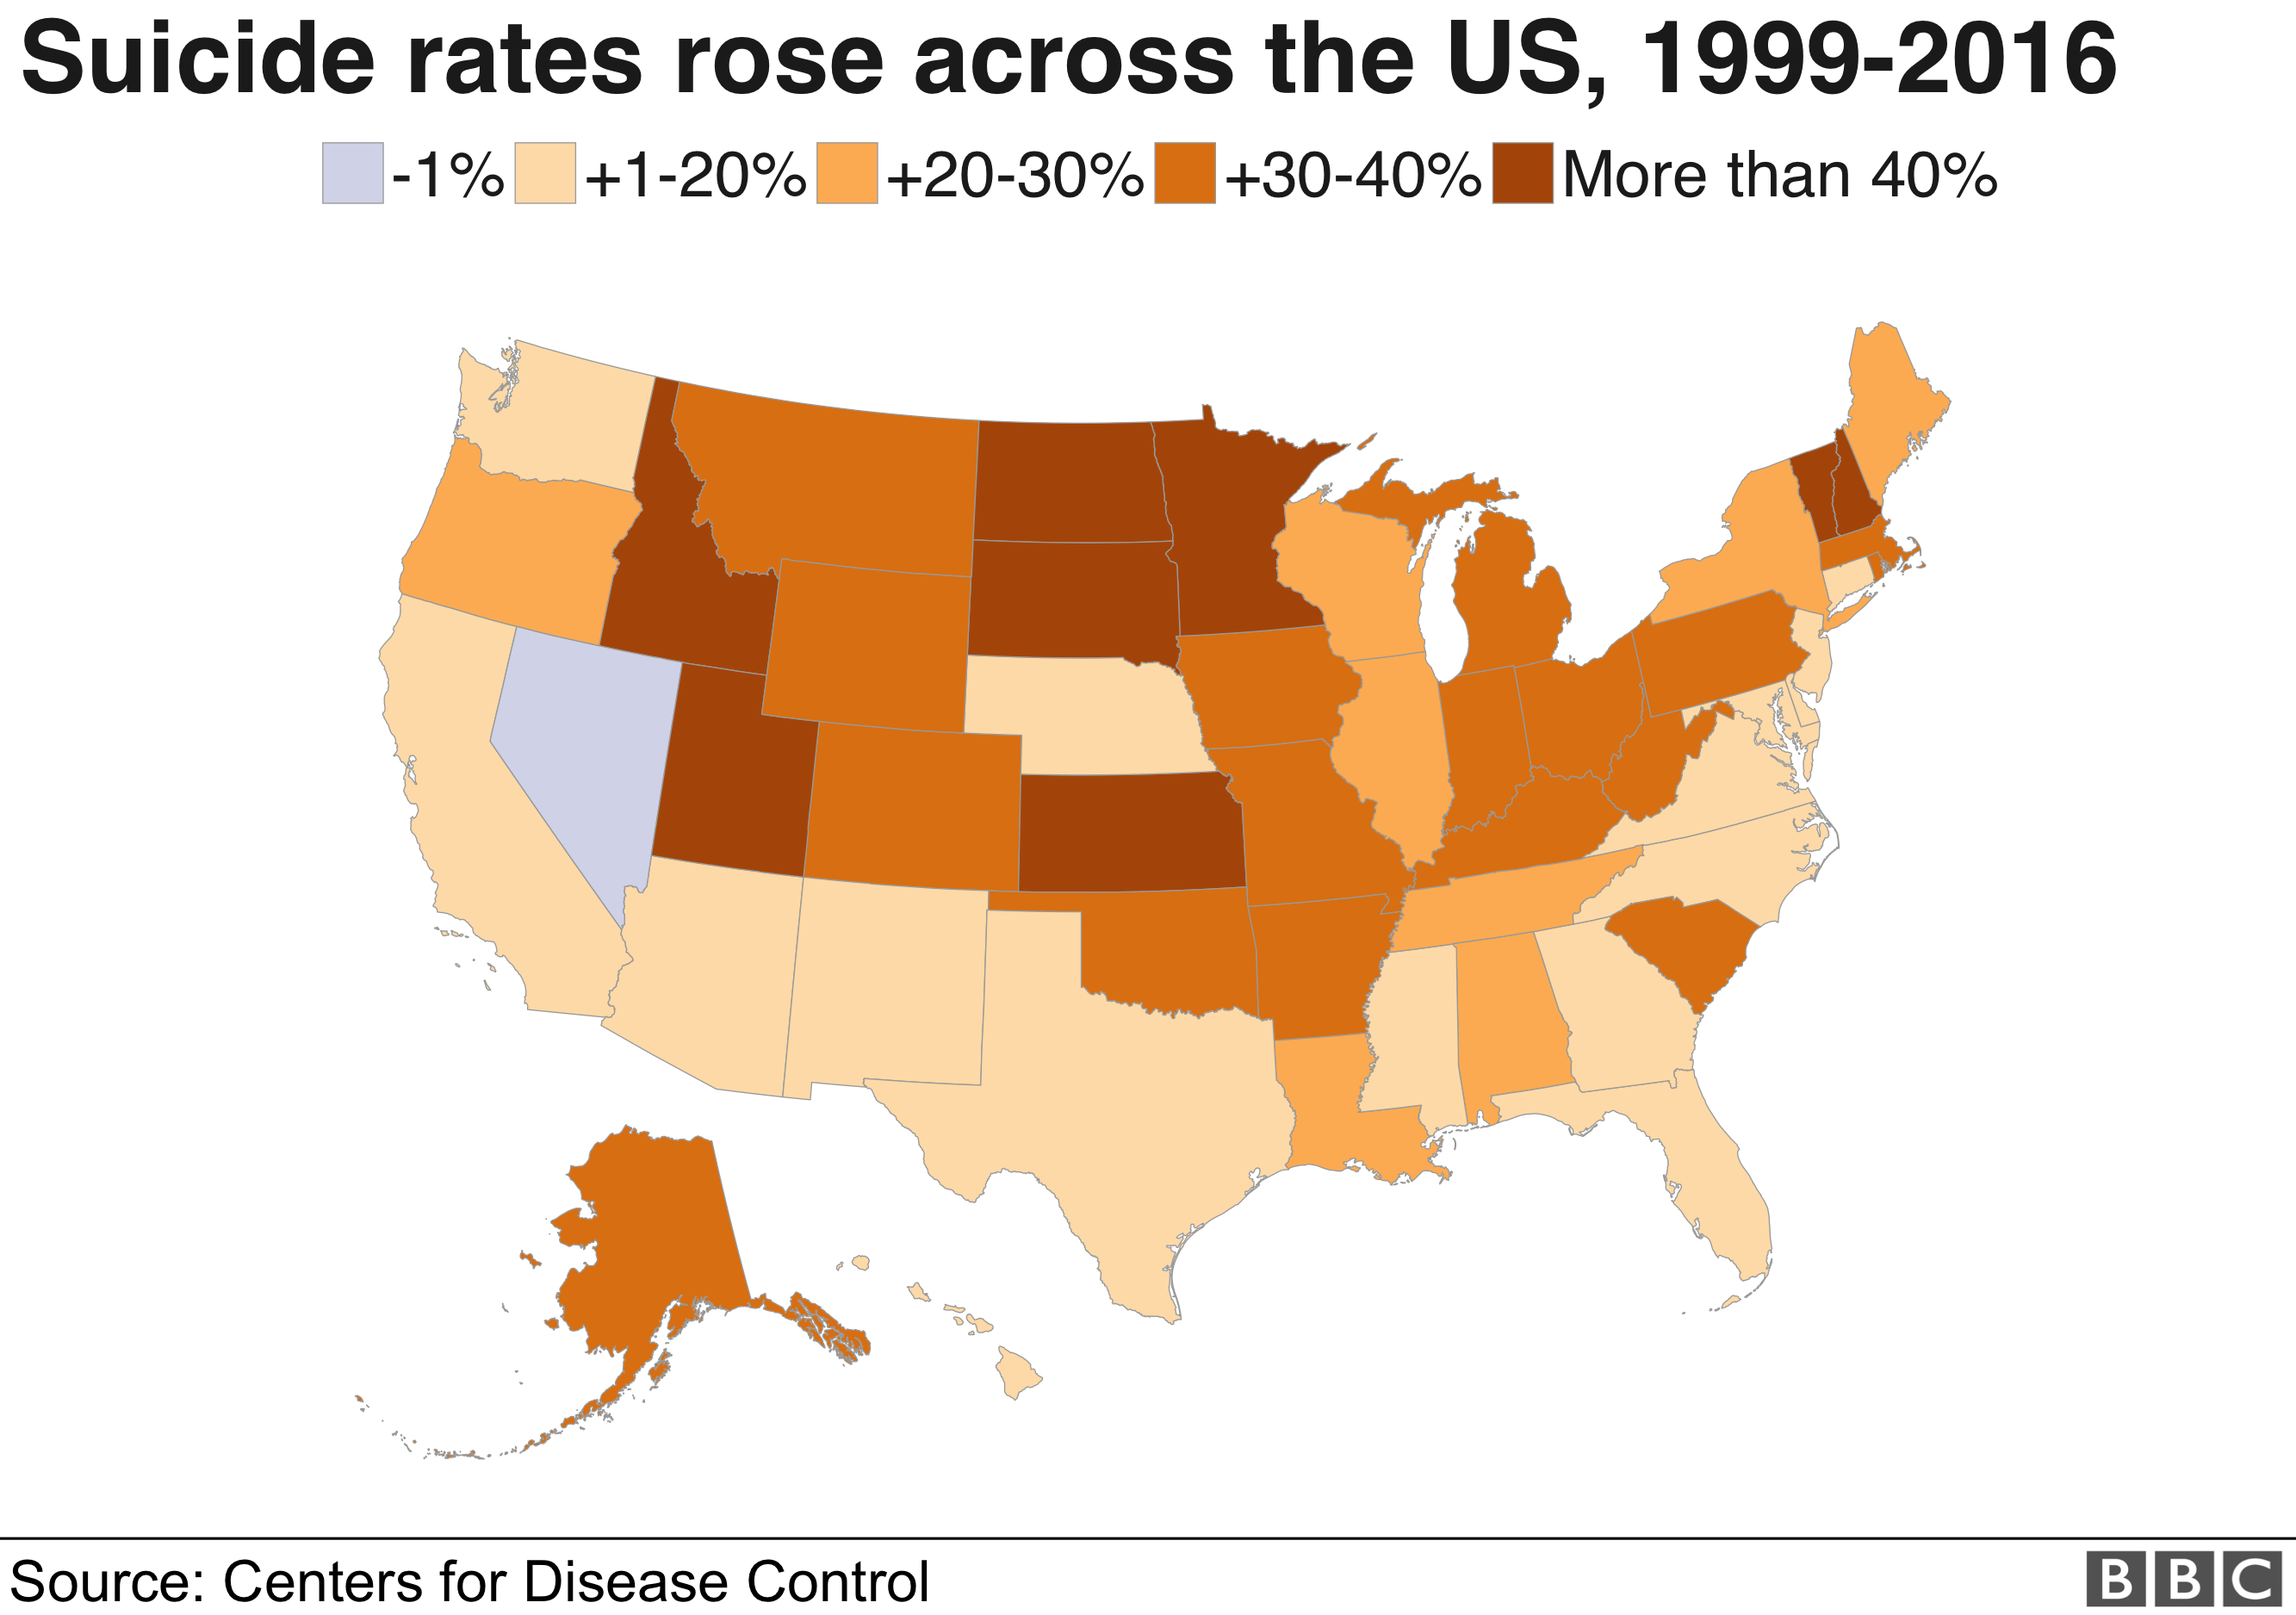 Map showing state-level suicide rate increases across the US